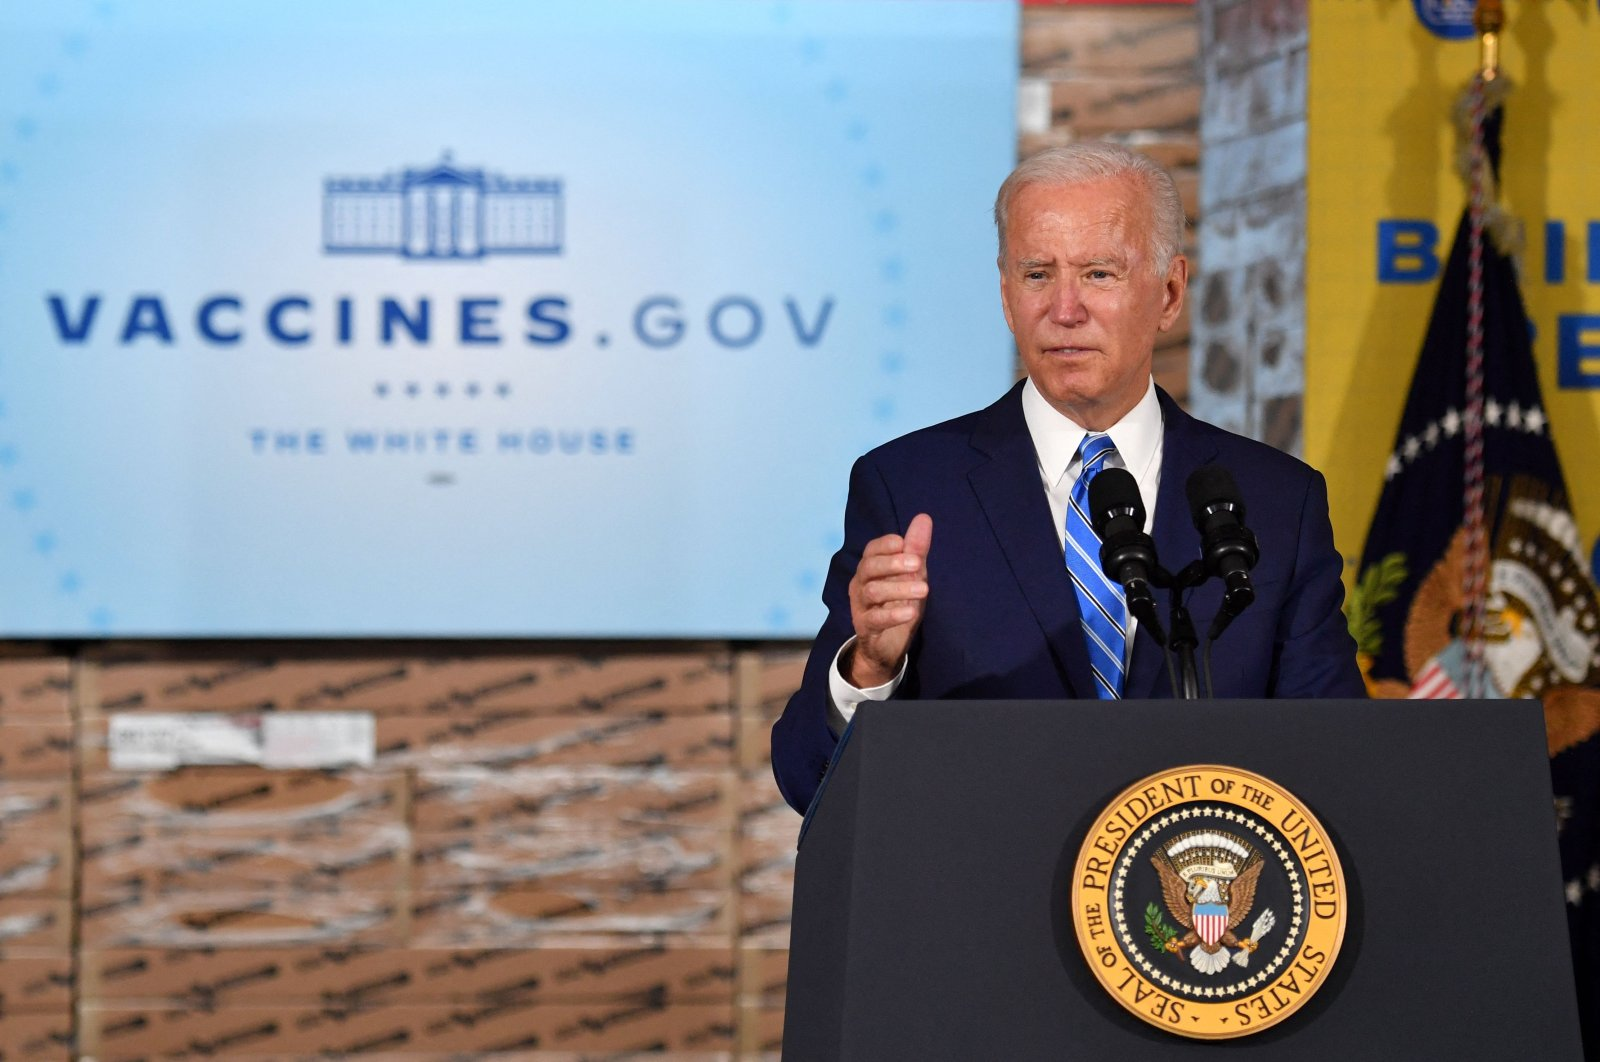 U.S. President Joe Biden speaks at a press conference after touring the Clayco construction site in Elk Grove Village, Illinois, U.S., Oct. 7, 2021. (AFP Photo)